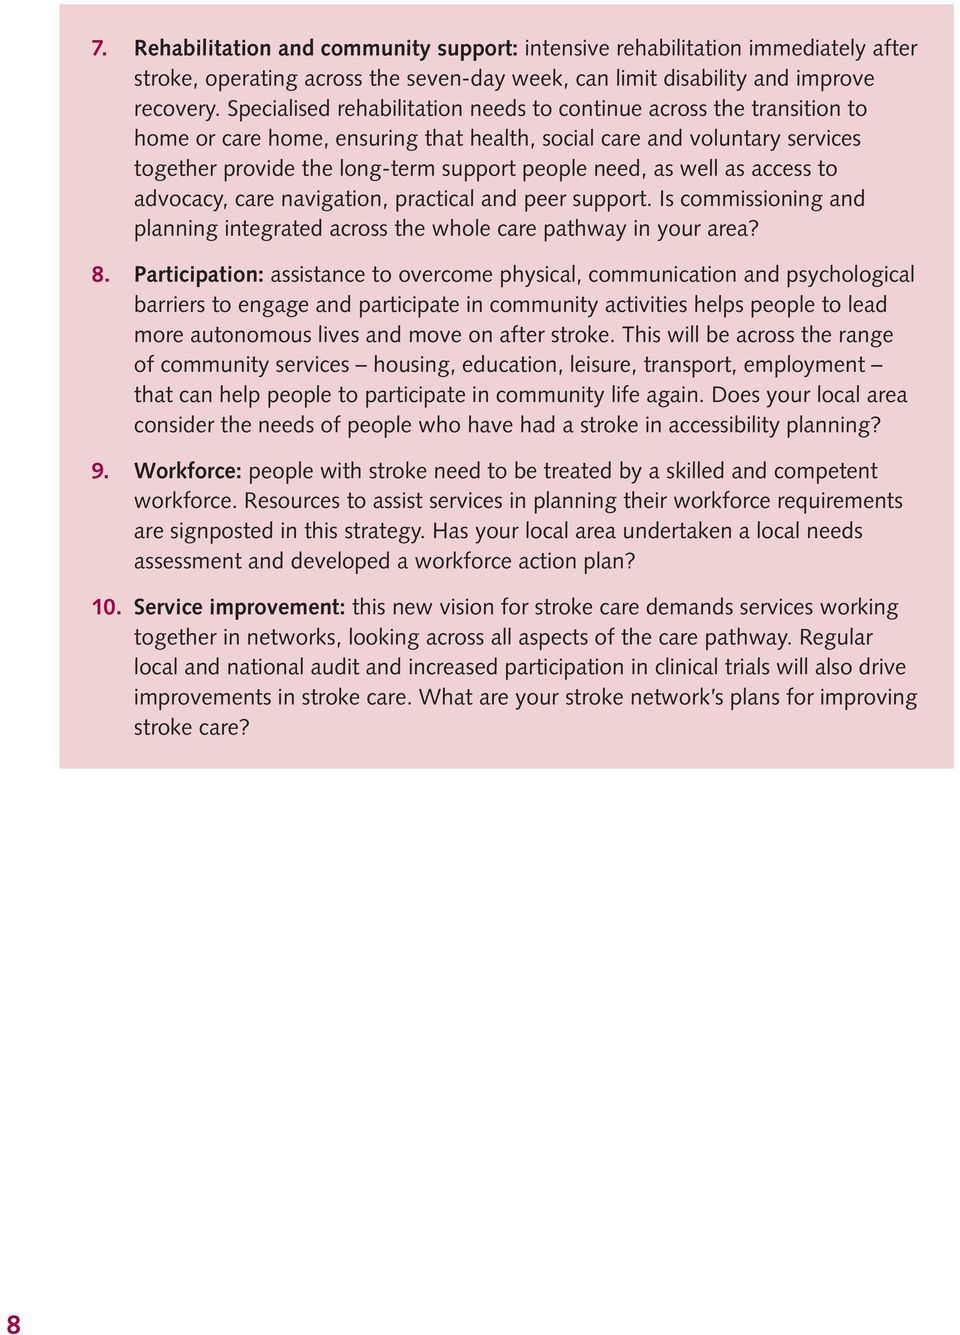 as well as access to advocacy, care navigation, practical and peer support. Is commissioning and planning integrated across the whole care pathway in your area? 8.